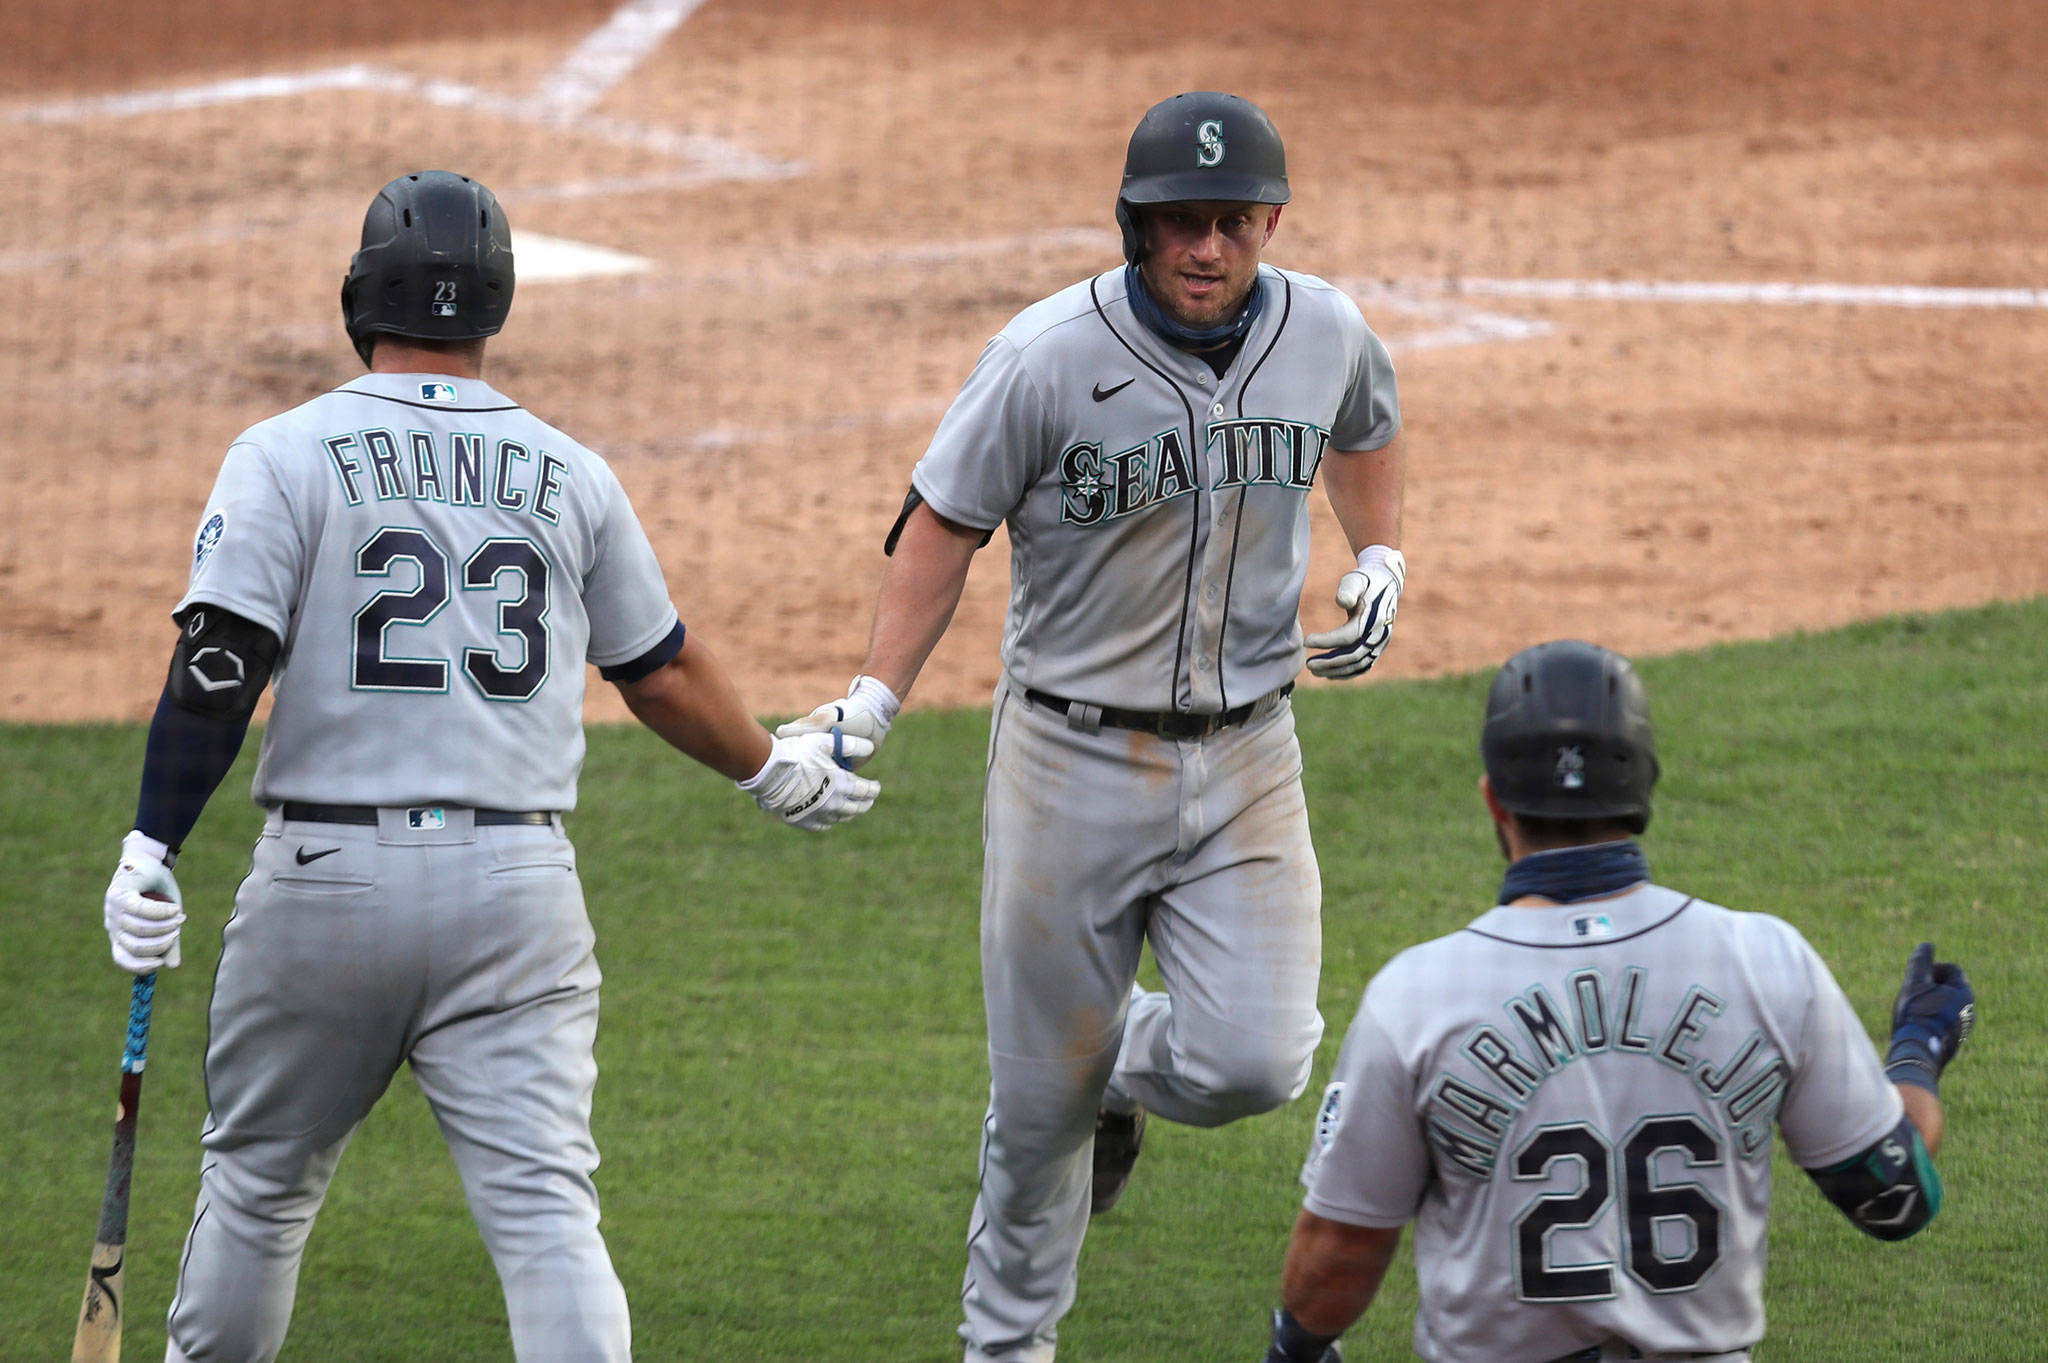 The Mariners' Kyle Seager (center) celebrates with teammates Ty France and José Marmolejos after hitting a solo home run during the fourth inning of the second game of a doubleheader against the Athletics on Sept. 26, 2020, in Oakland, Calif. (AP Photo/Jed Jacobsohn)